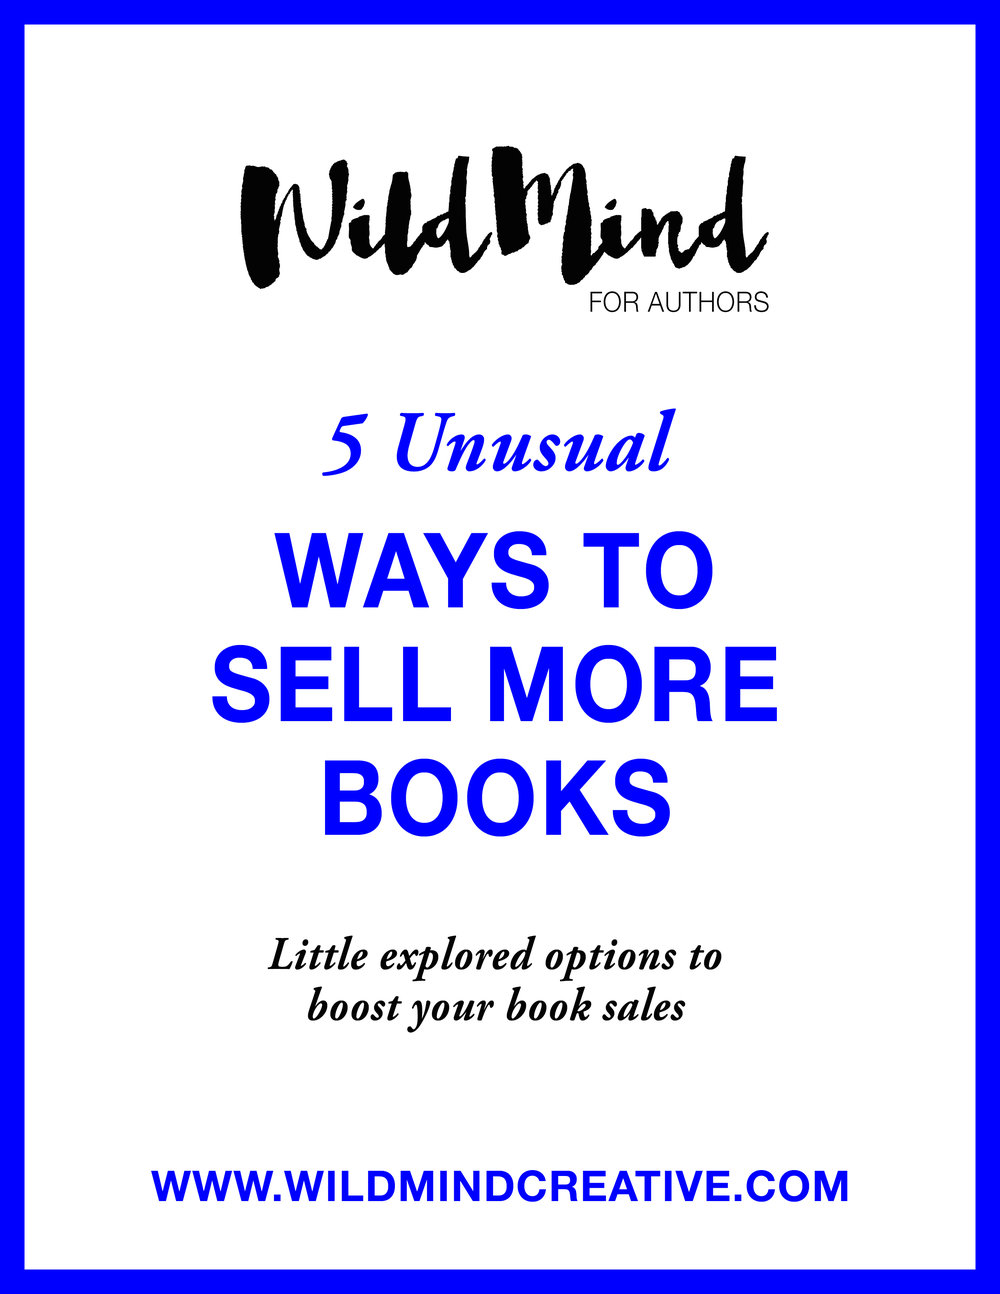 5 Unusual Ways To Sell More Books